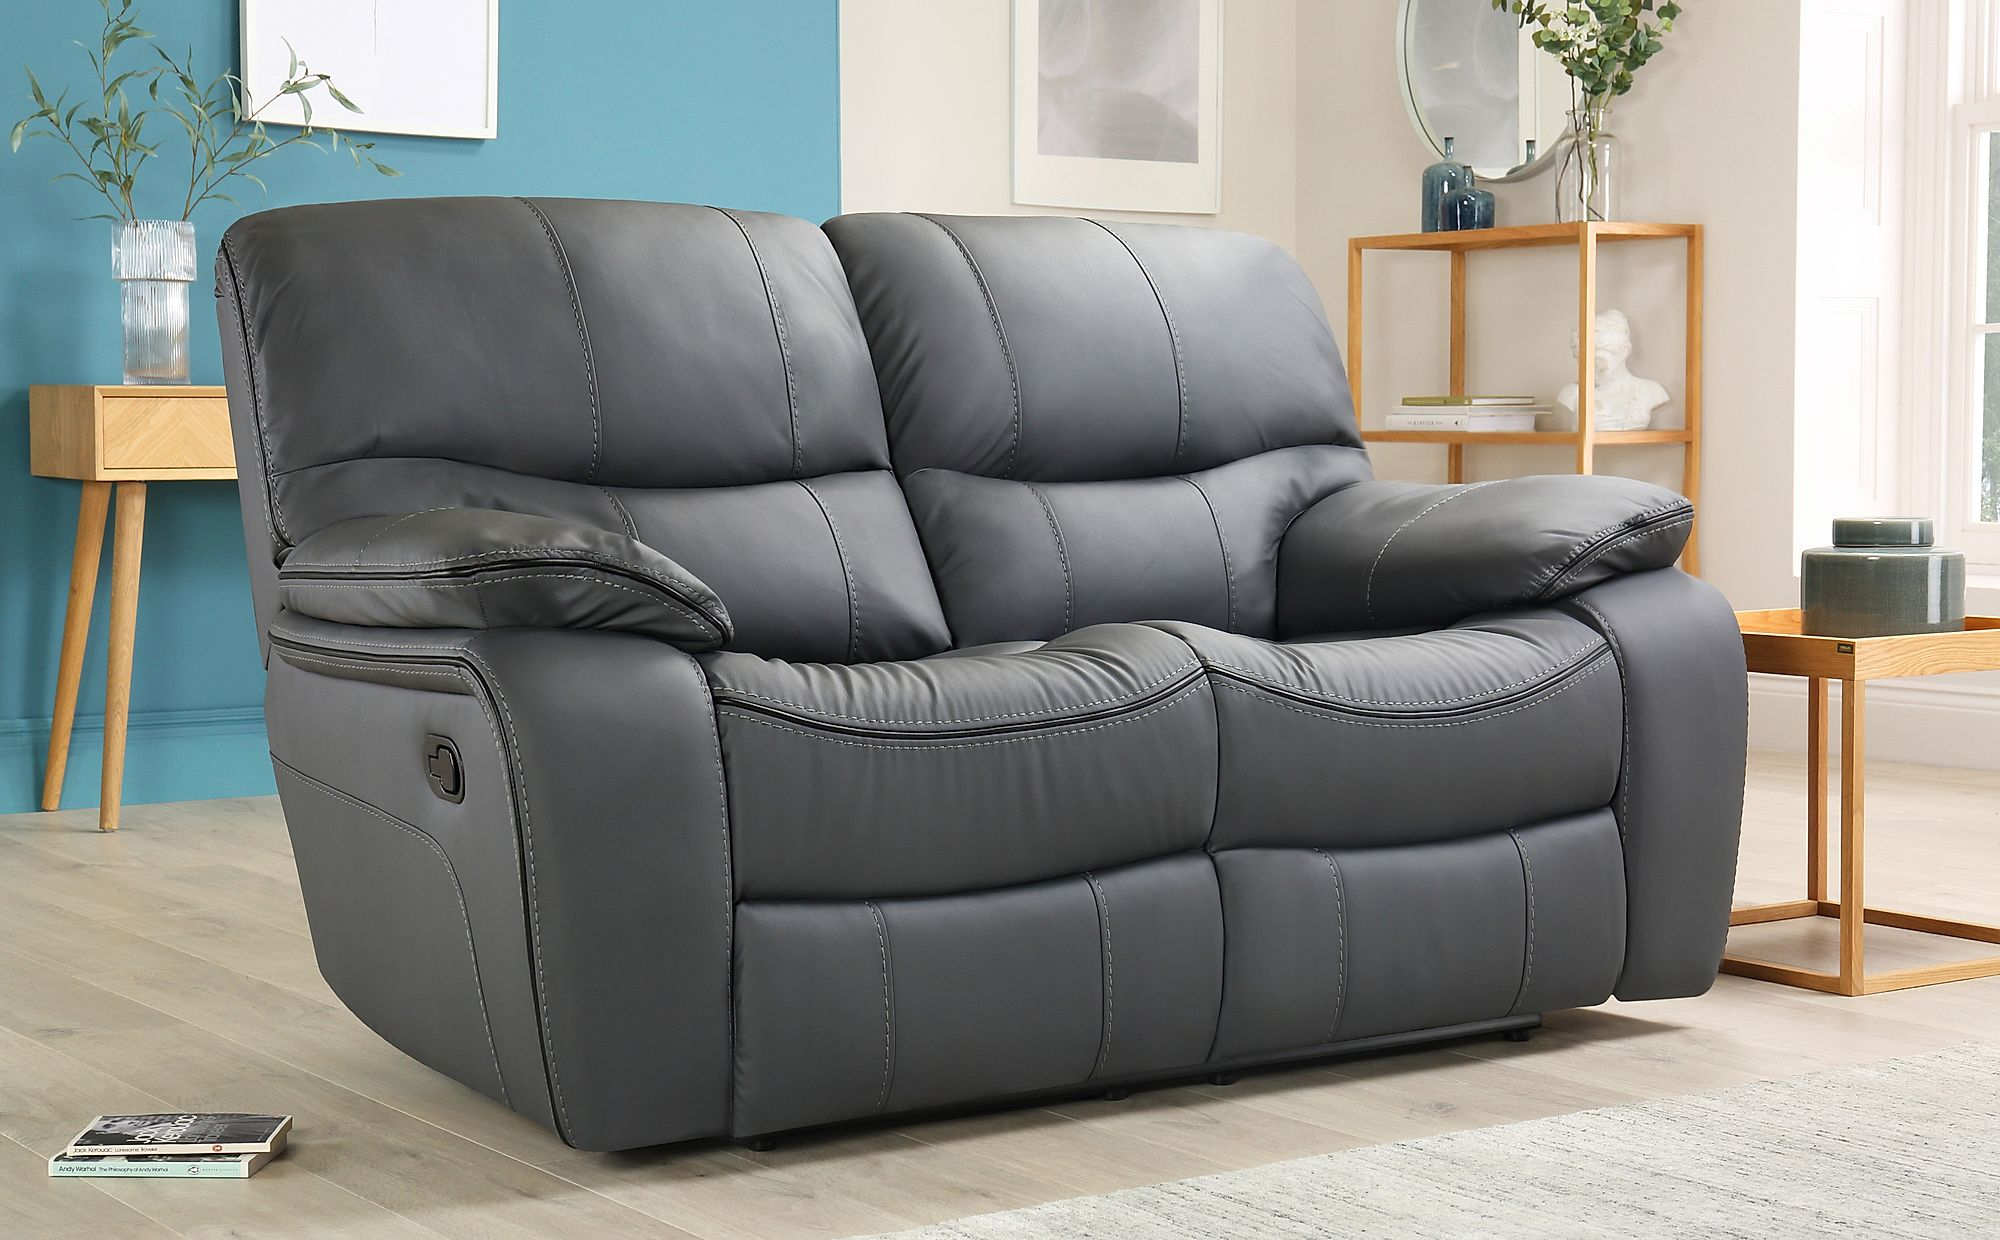 Peachy Beaumont Grey Leather 2 Seater Recliner Sofa Bralicious Painted Fabric Chair Ideas Braliciousco